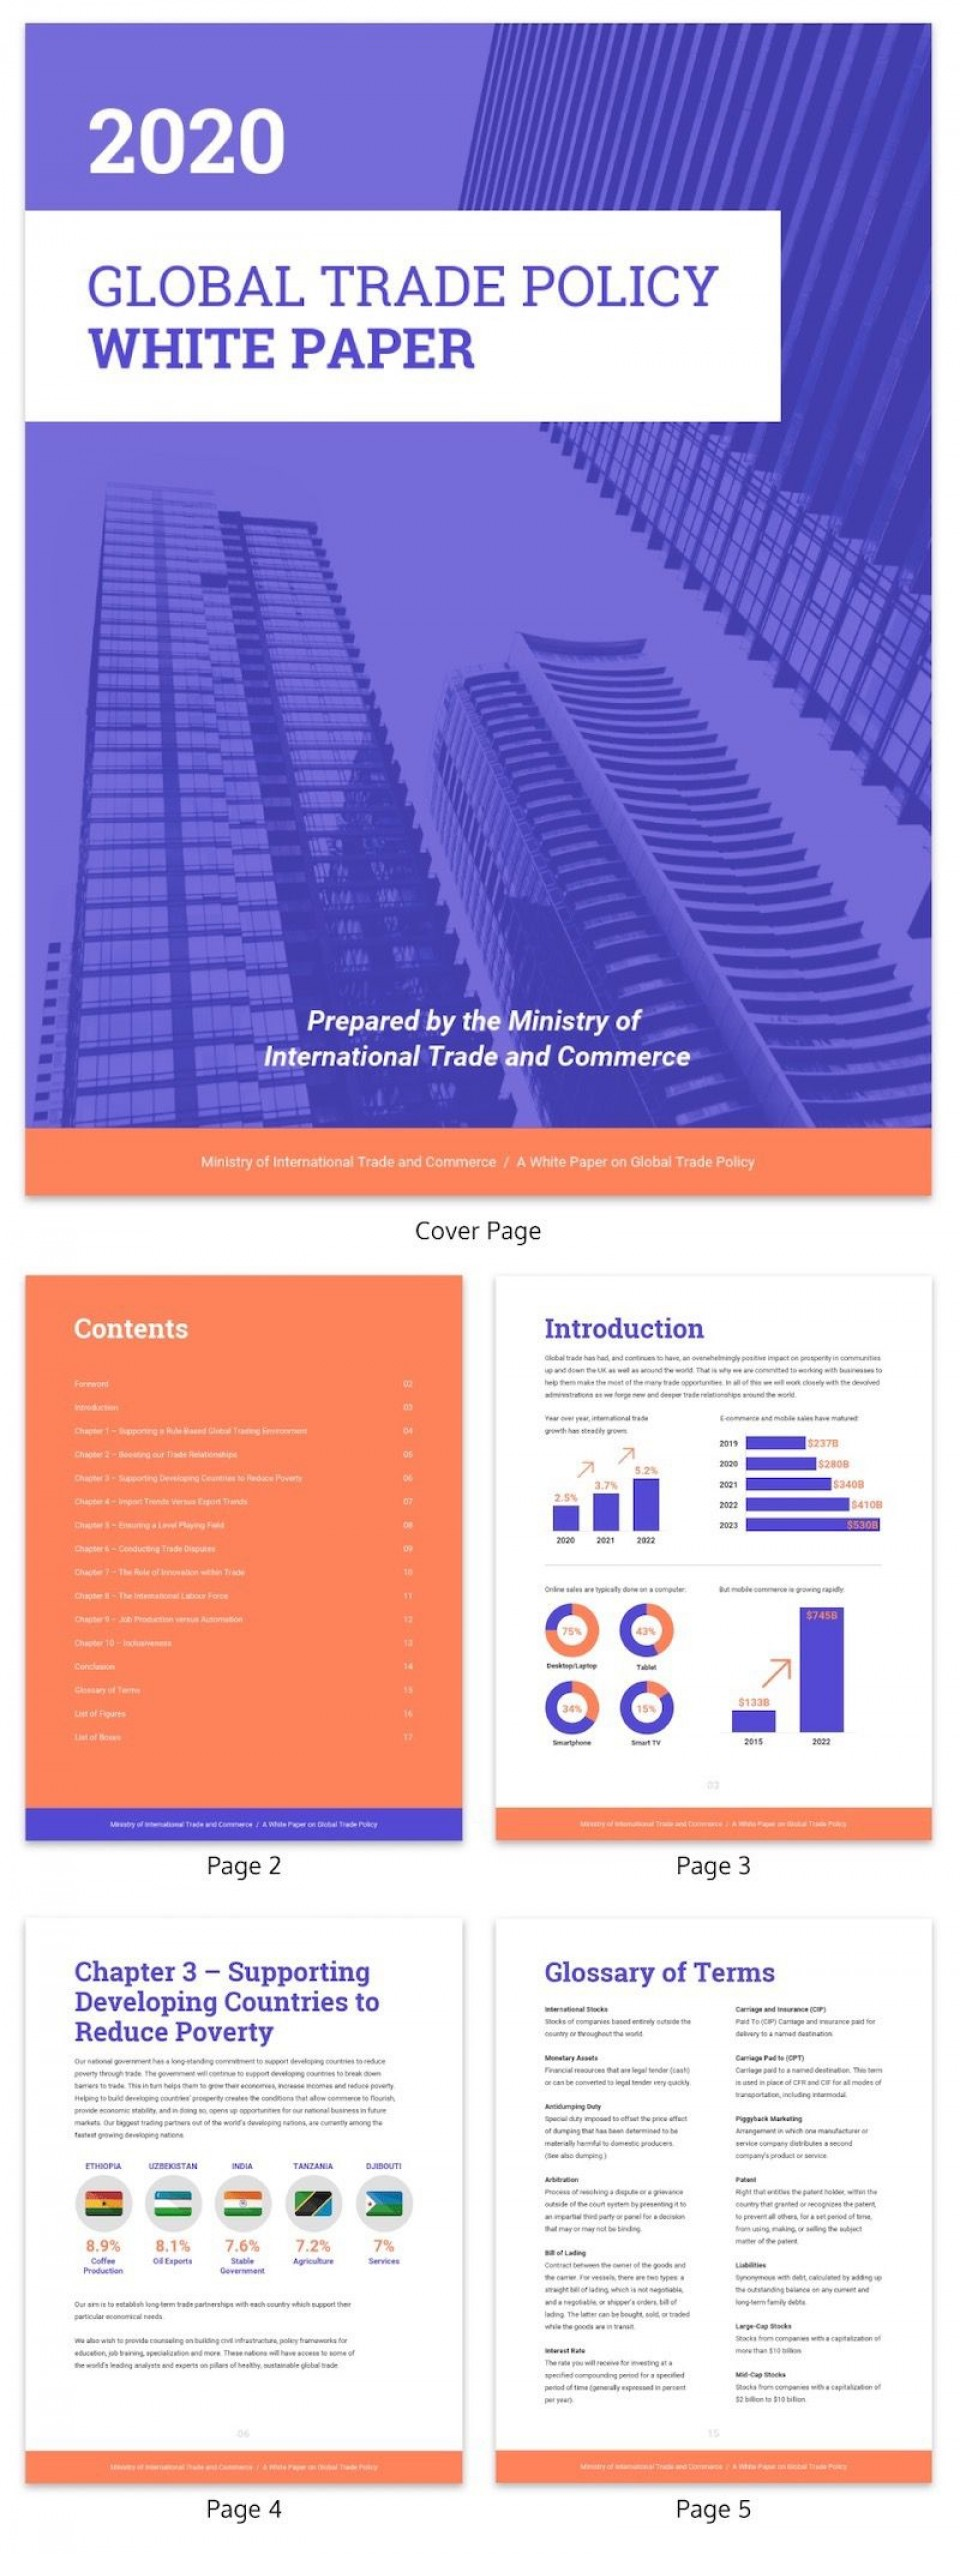 005 Unusual Technical White Paper Template Sample  Word Doc Free Download 2013960